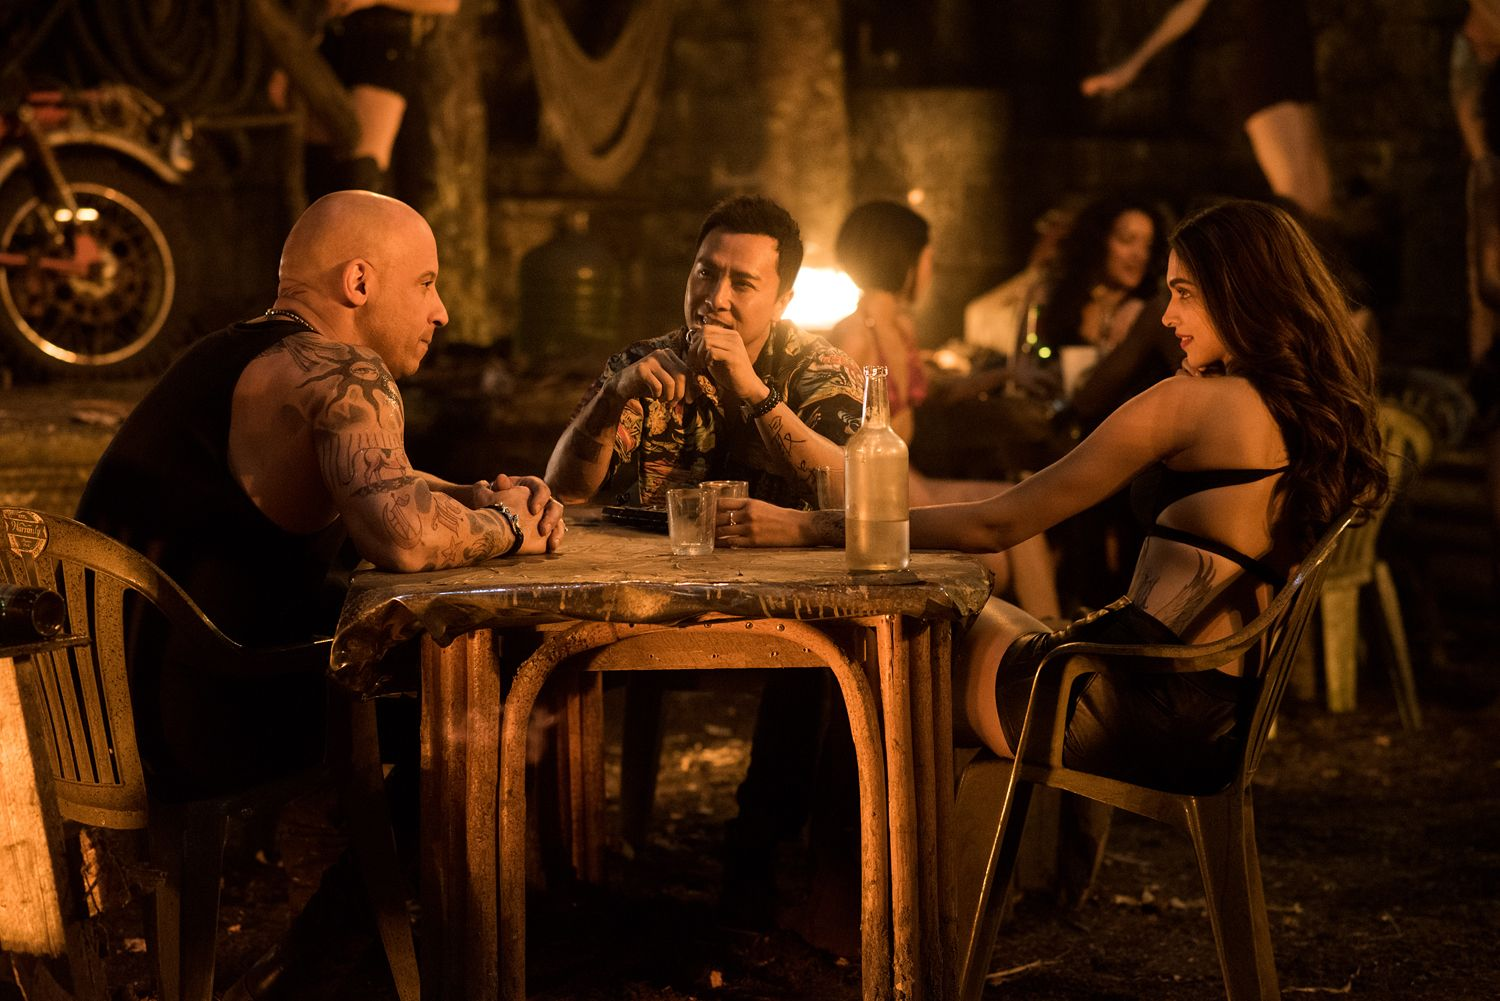 Fourth 'xXx' movie in the works with Vin Diesel